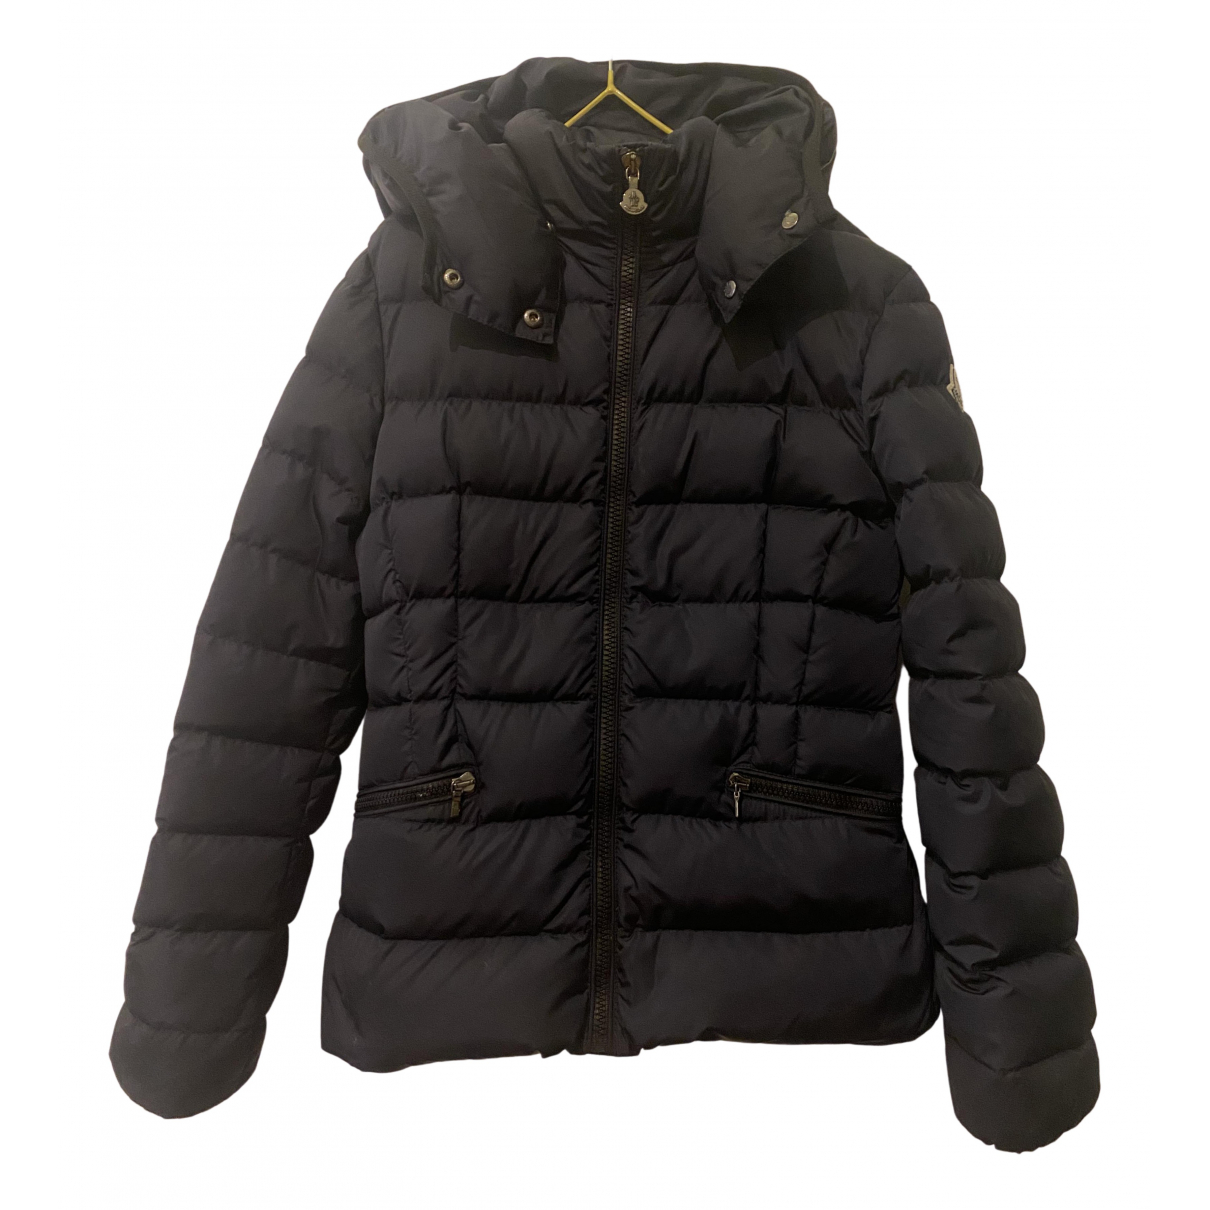 Moncler N Navy jacket & coat for Kids 12 years - XS FR